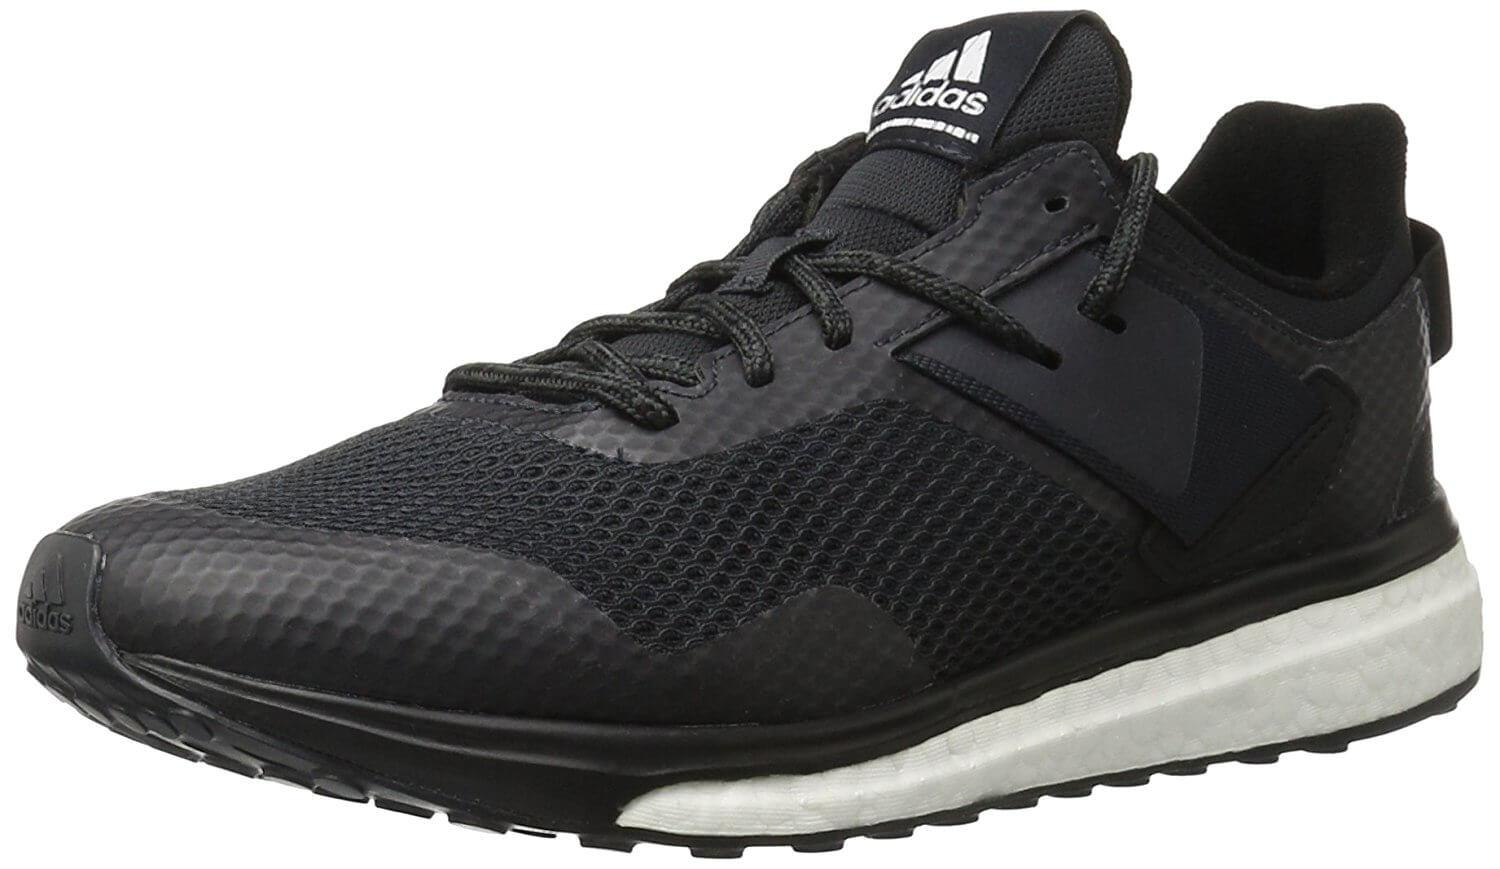 b3558e24b20cc9 Adidas Response 3 Reviewed - To Buy or Not in Mar 2019